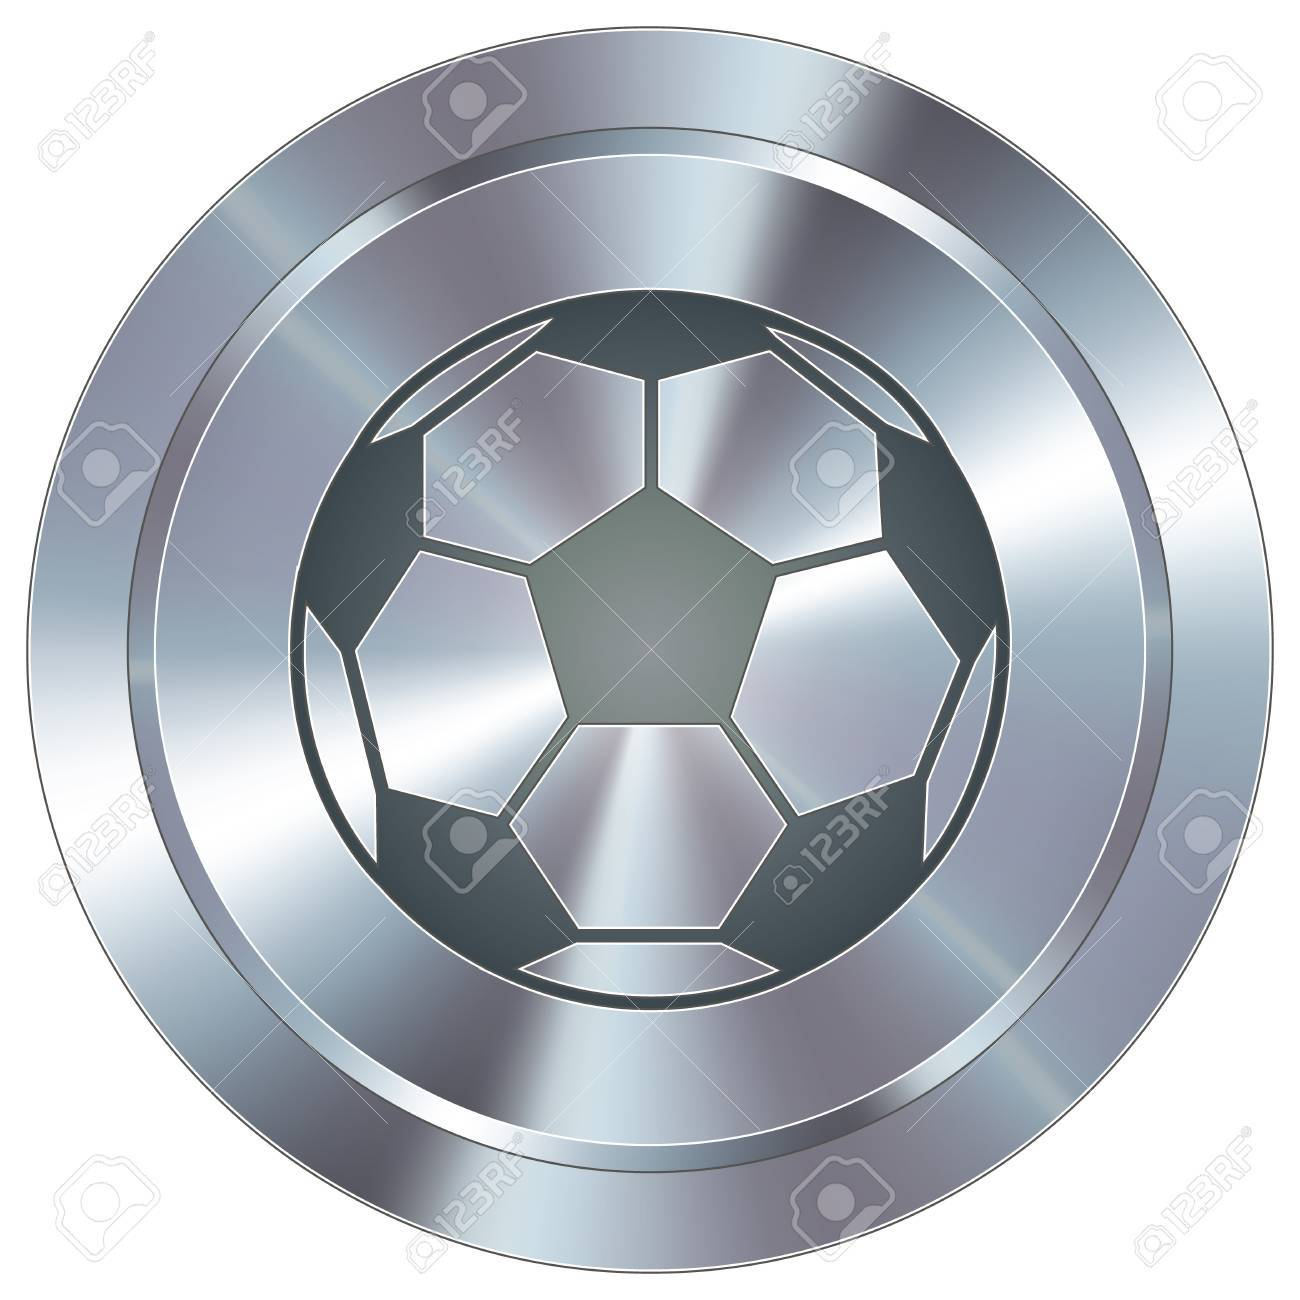 Soccer sport icon on round stainless steel modern industrial button - 14666129